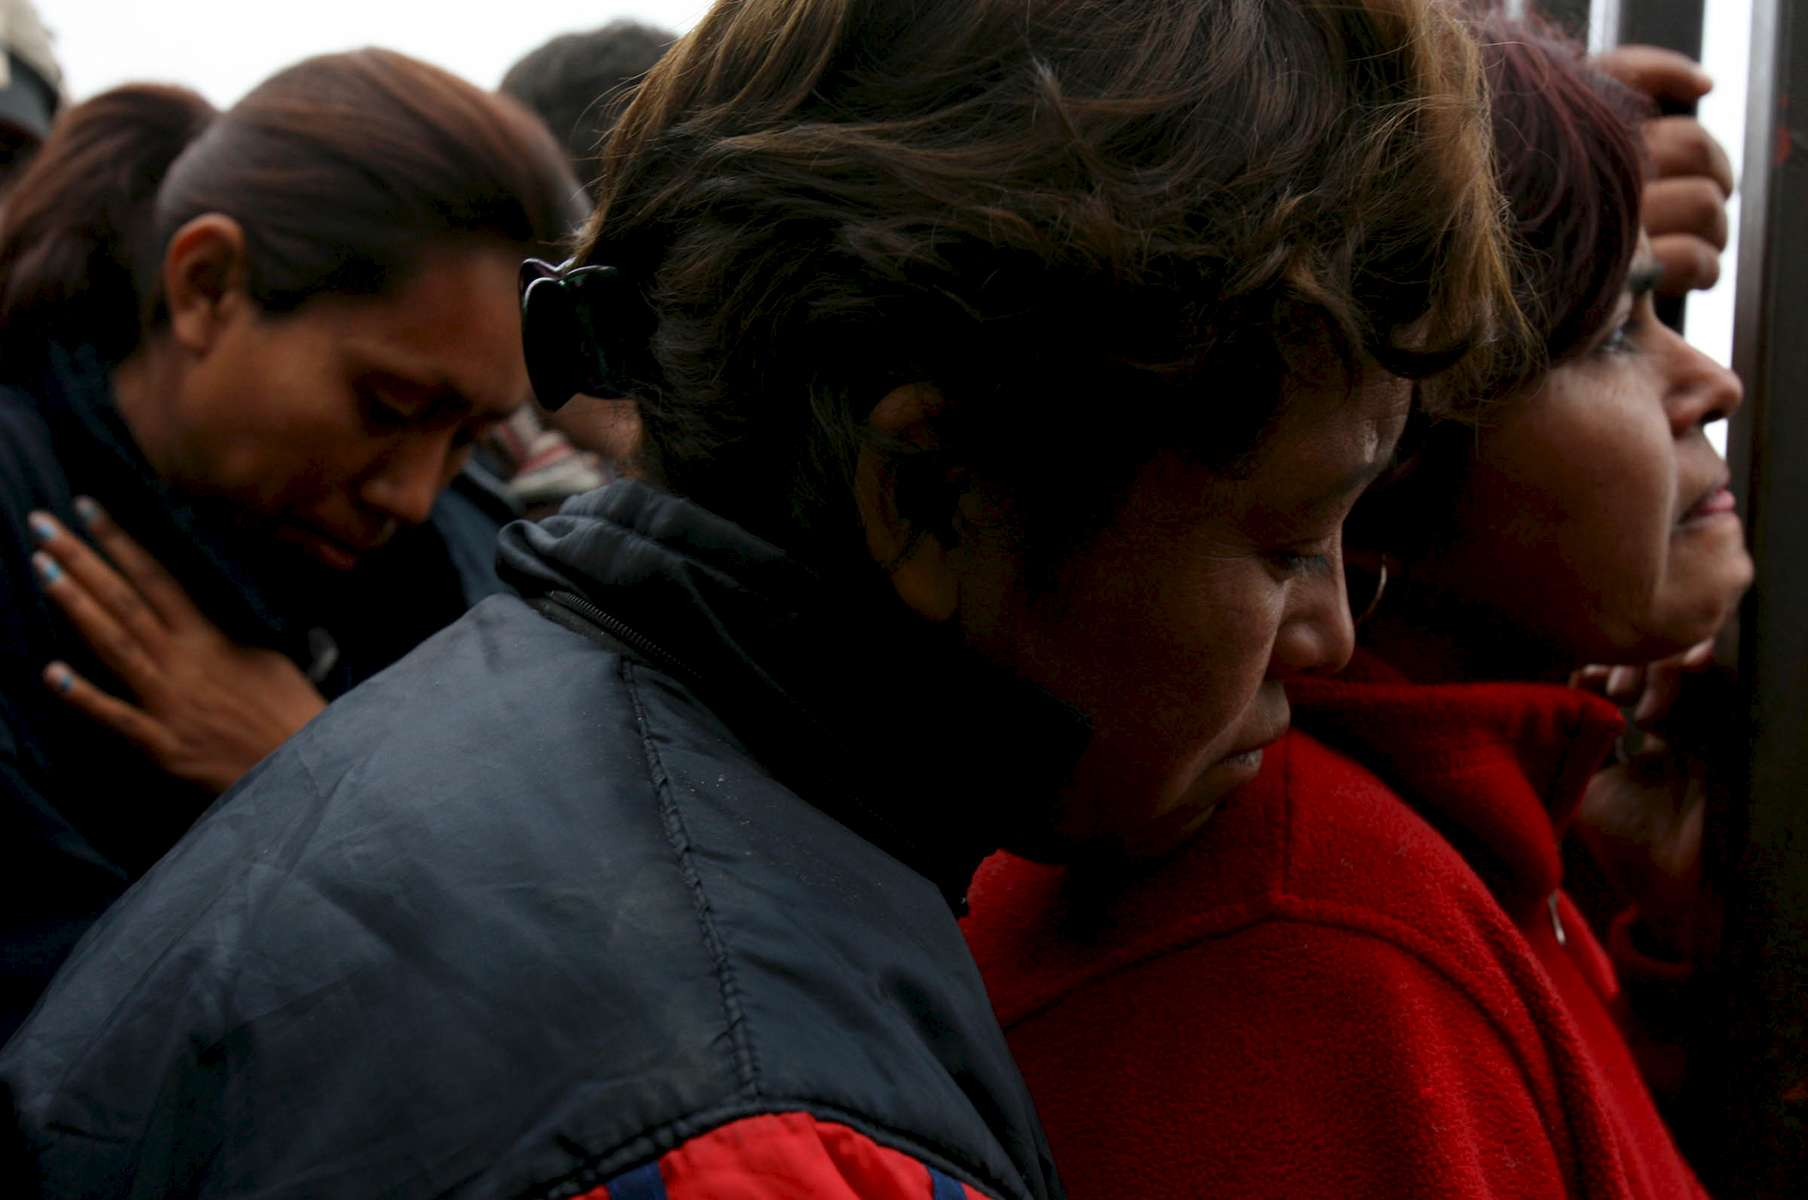 Women listen to a press conference given from behind the gates Thursday in front of the Pasta de Conchos coal mine in San Juan de Sabinas in the Mexican state of Coahuila Thursday. Family members waited outside the Pasta de Conchos coal mine Thursday. In the Early morning on Sunday 65 miners were trapped as much as 2000 feet below ground after an explosion. Sharón Steinmann / Houston Chronicle